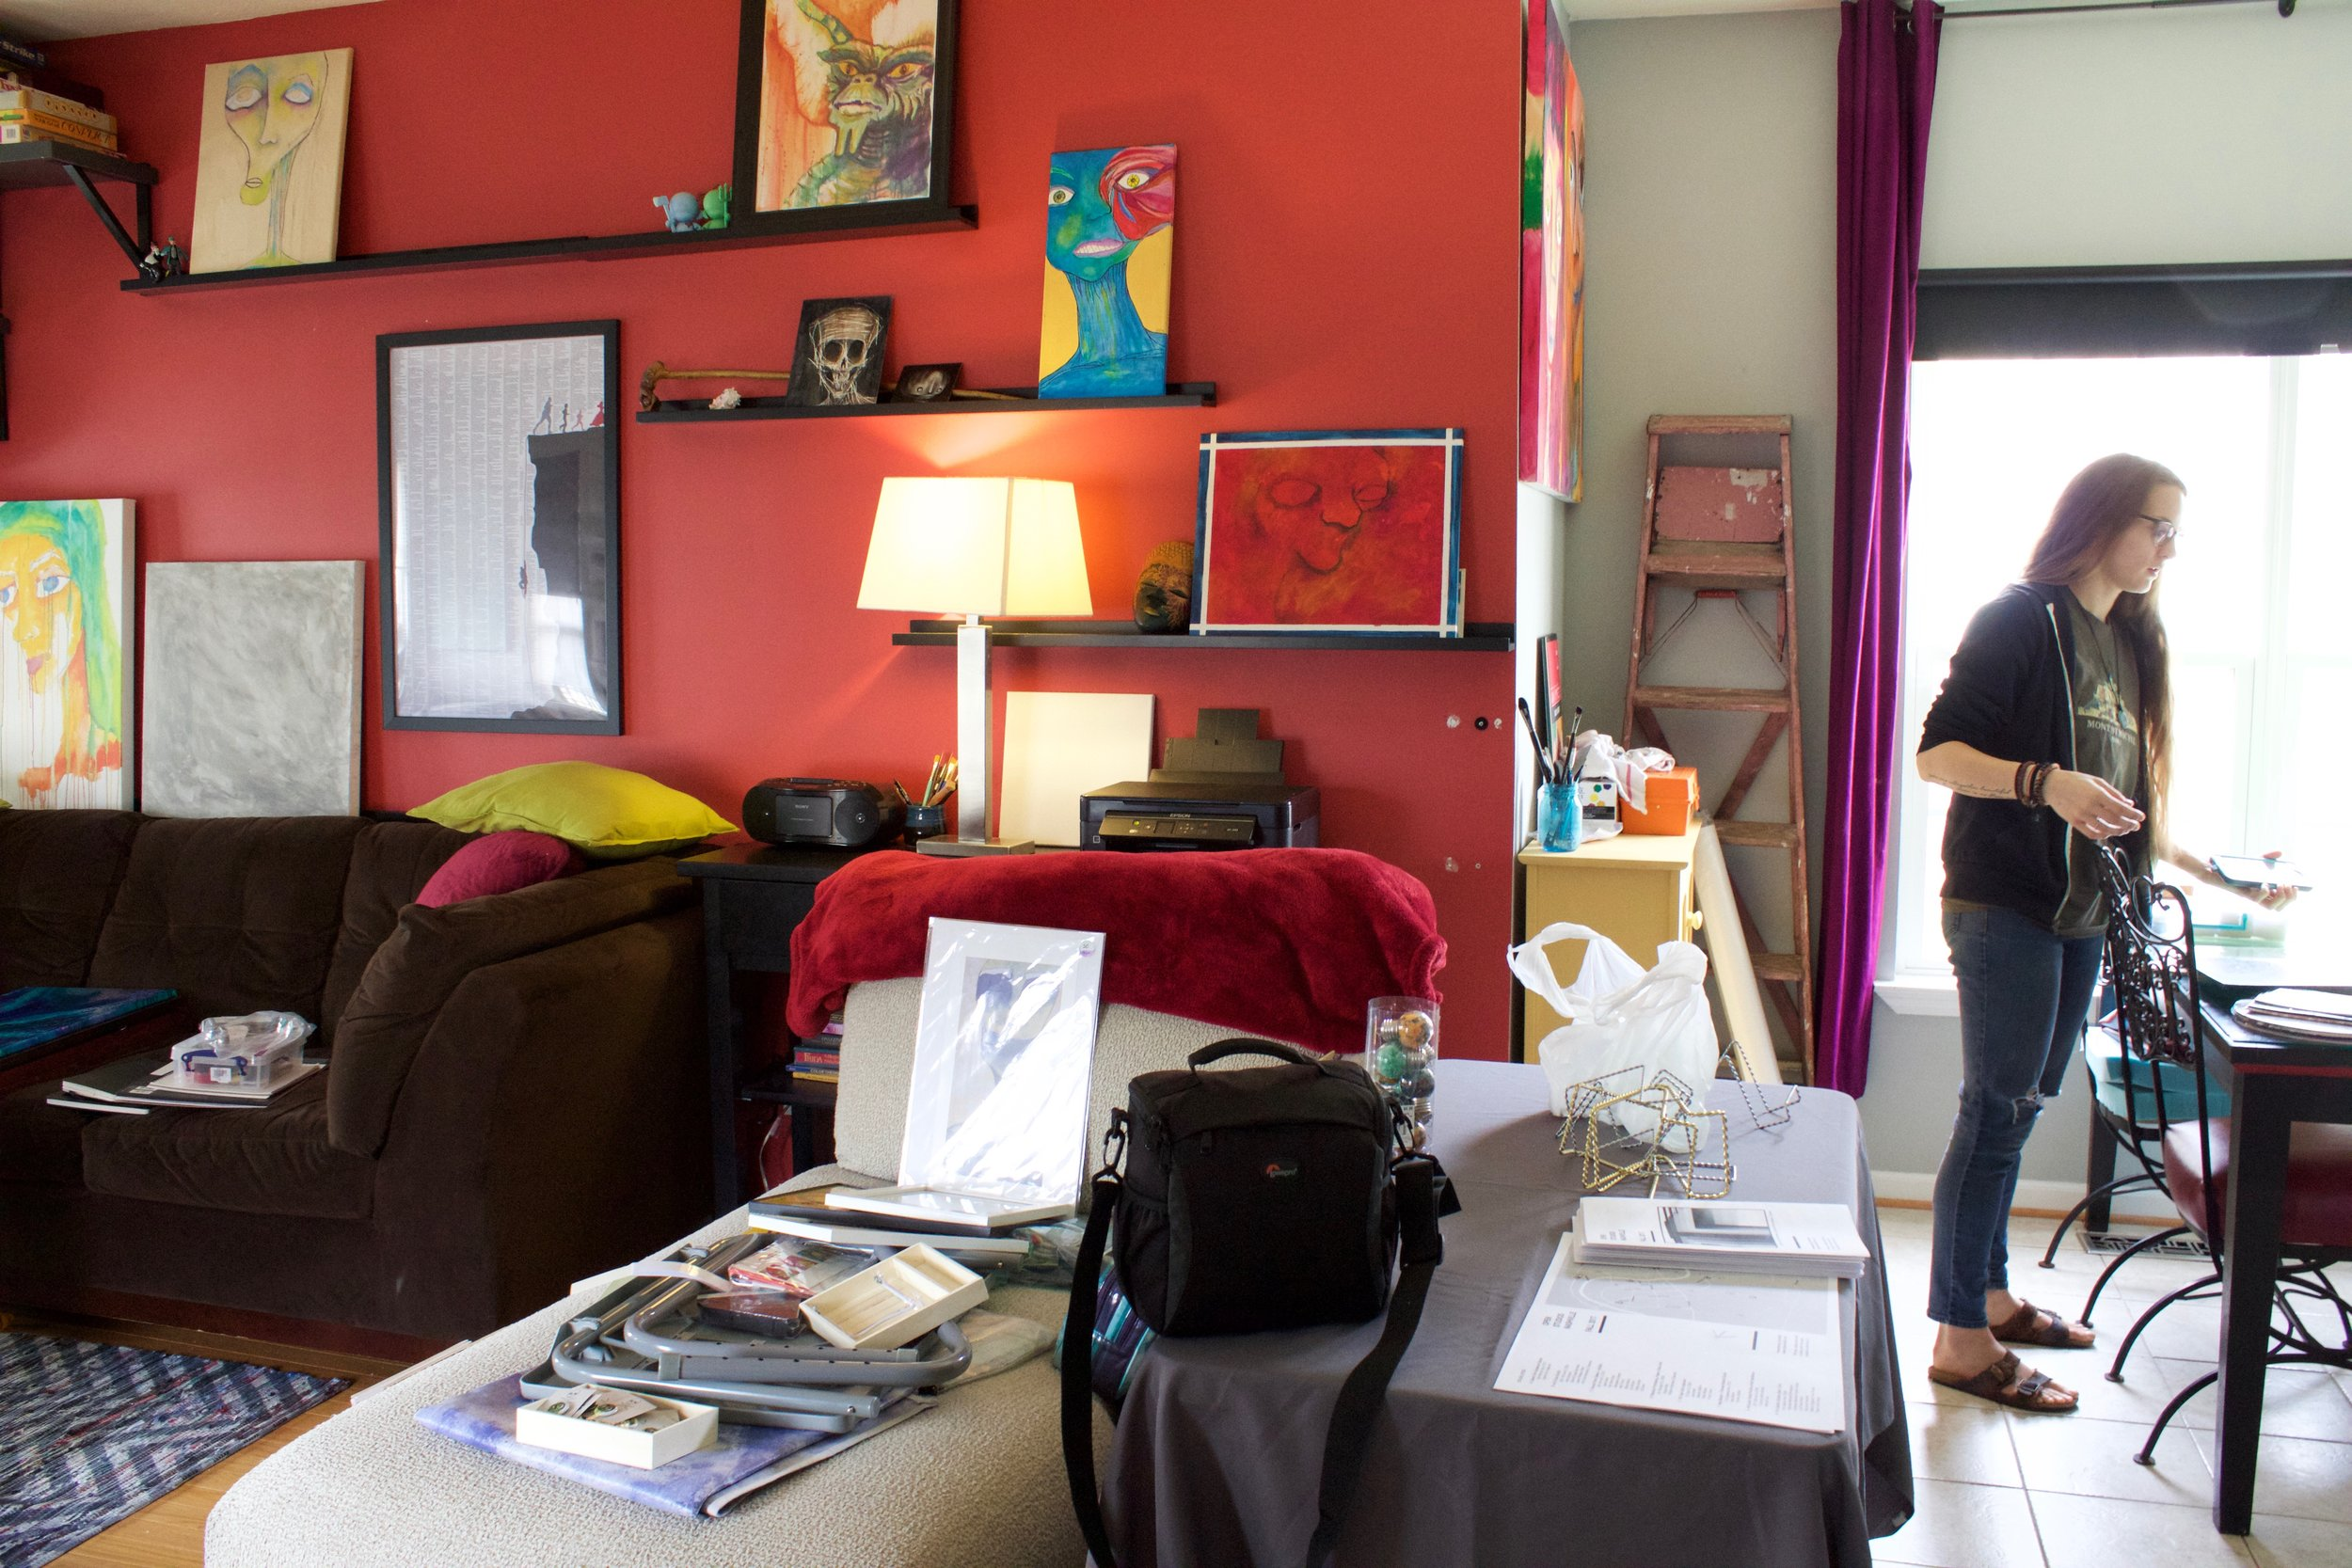 Meg Marano's studio in North Nashville